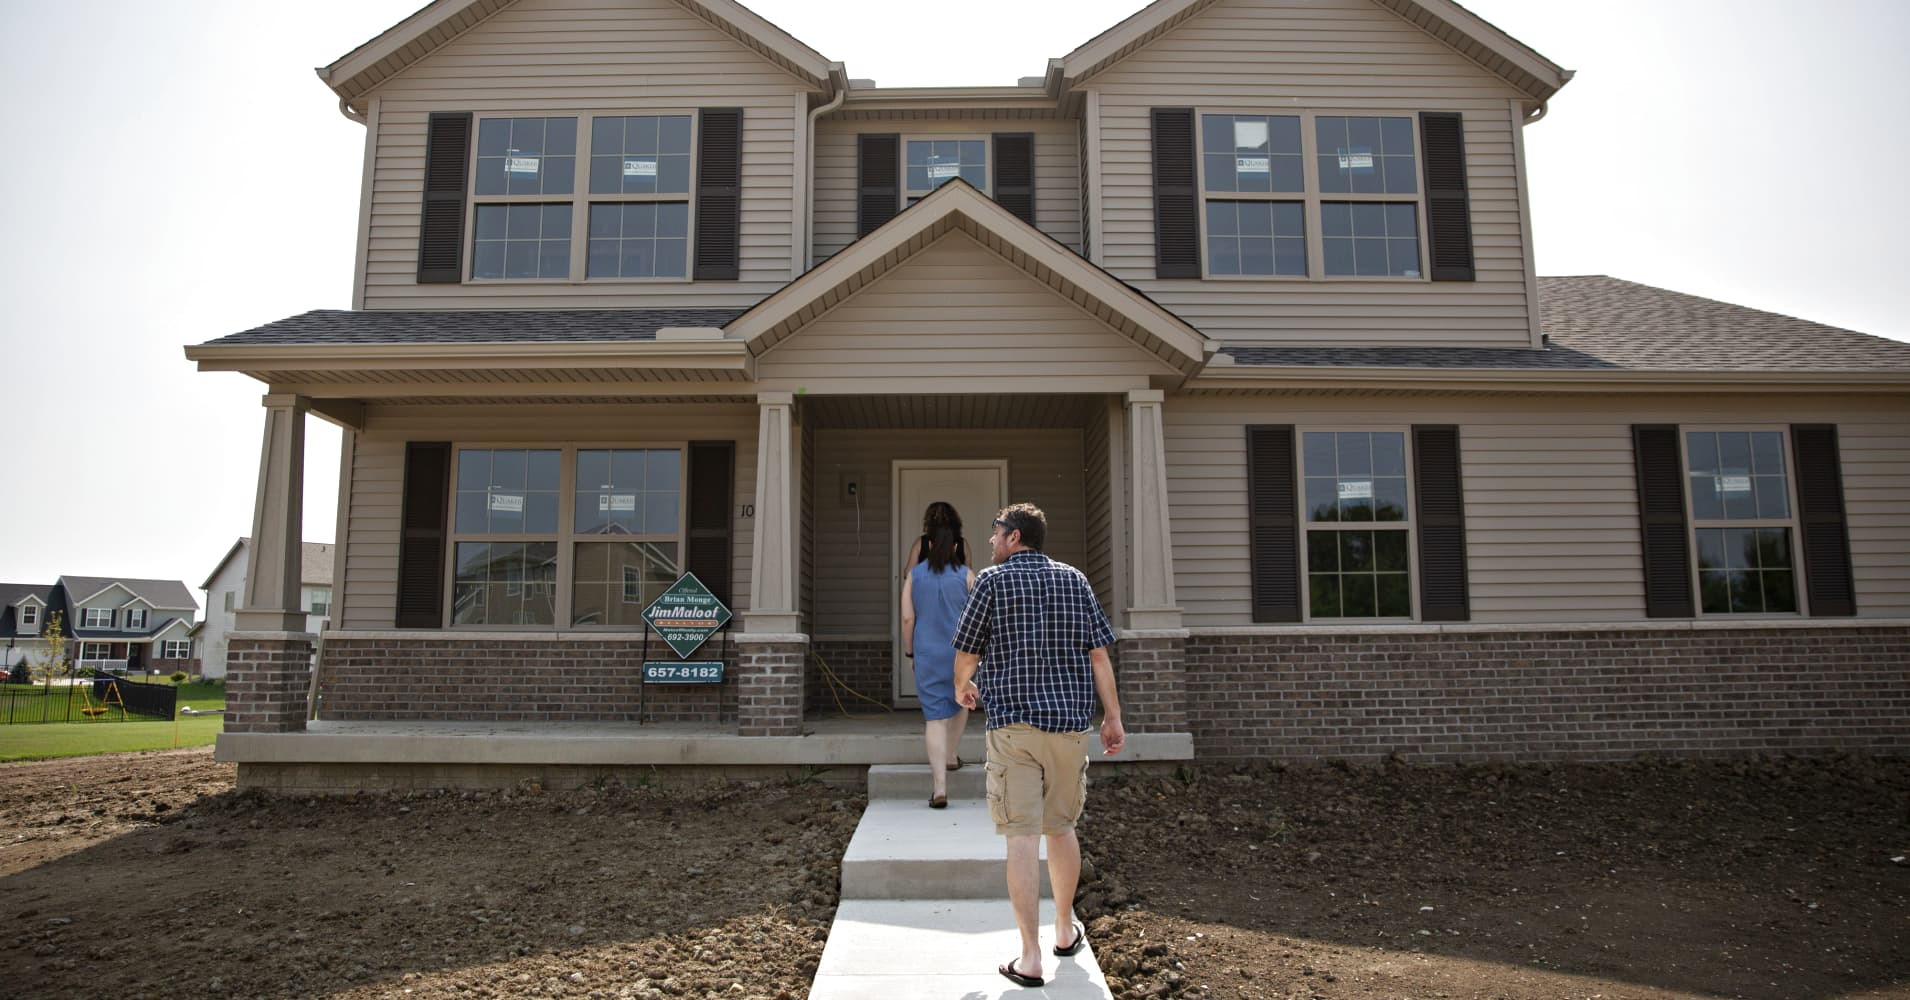 In a surprising twist, the state of housing demand is suddenly strong